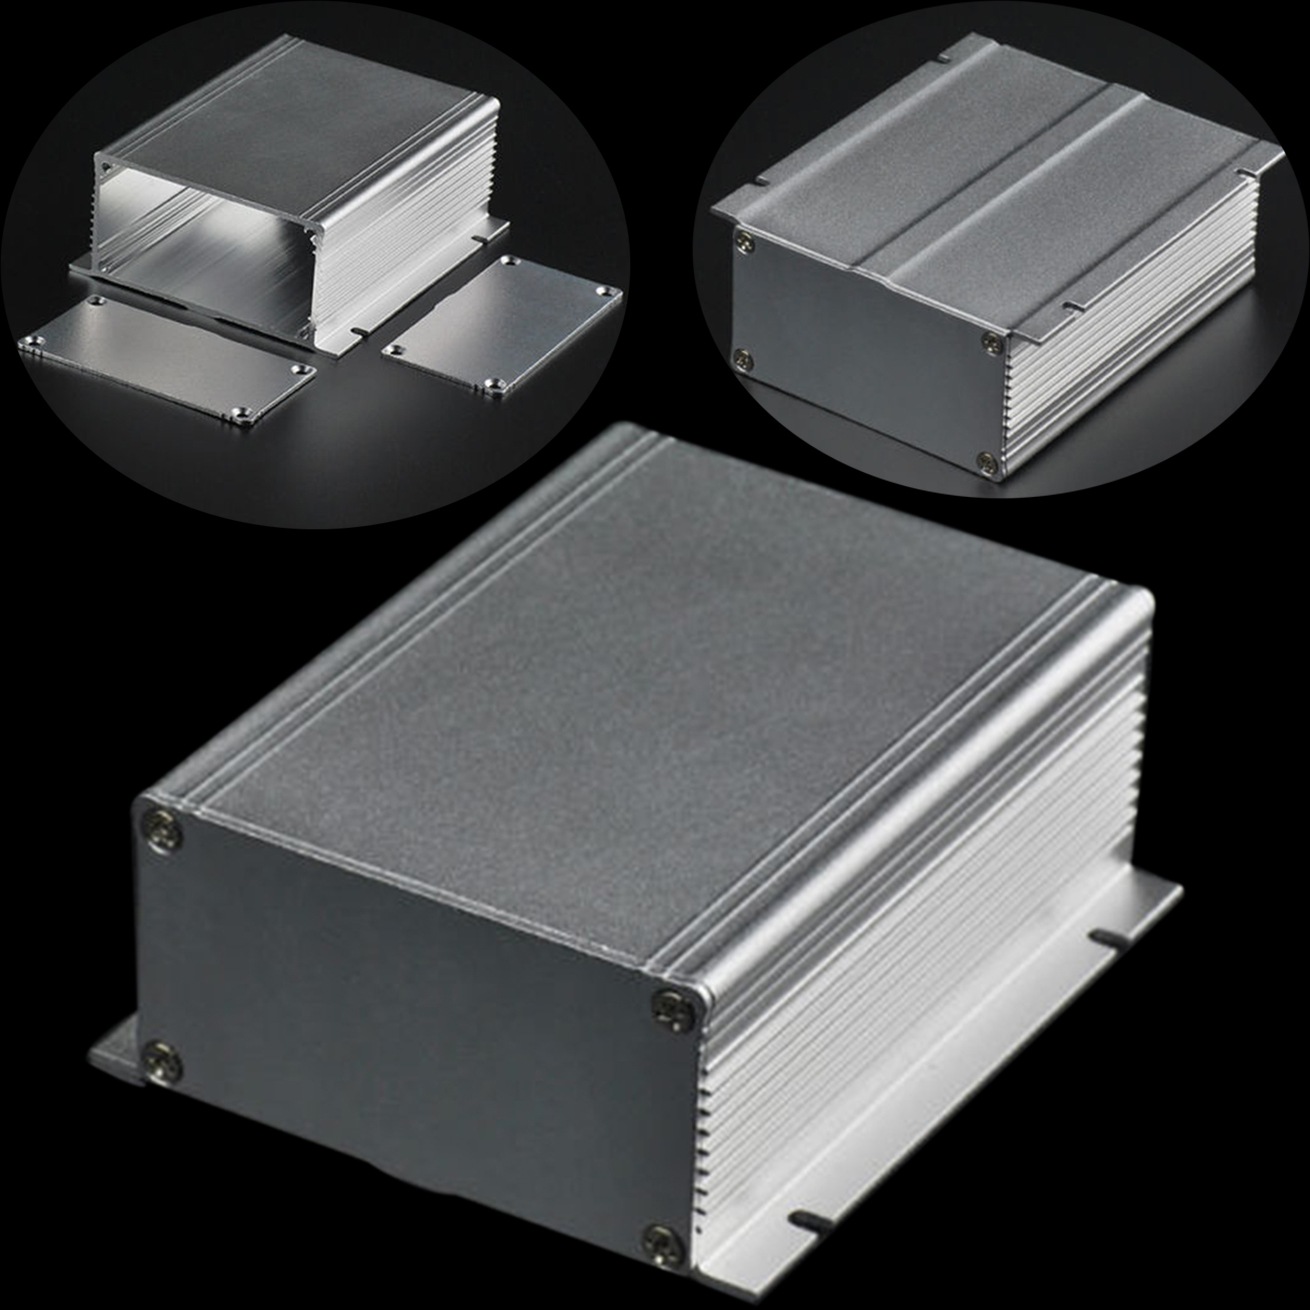 1pc Silver Extruded Aluminum Enclosure Electronic Power PCB Instrument Box Case 88x39x100mm 1 piece free shipping aluminum amplifier case extruded aluminum box projects 96x33x140 mm aluminium profile